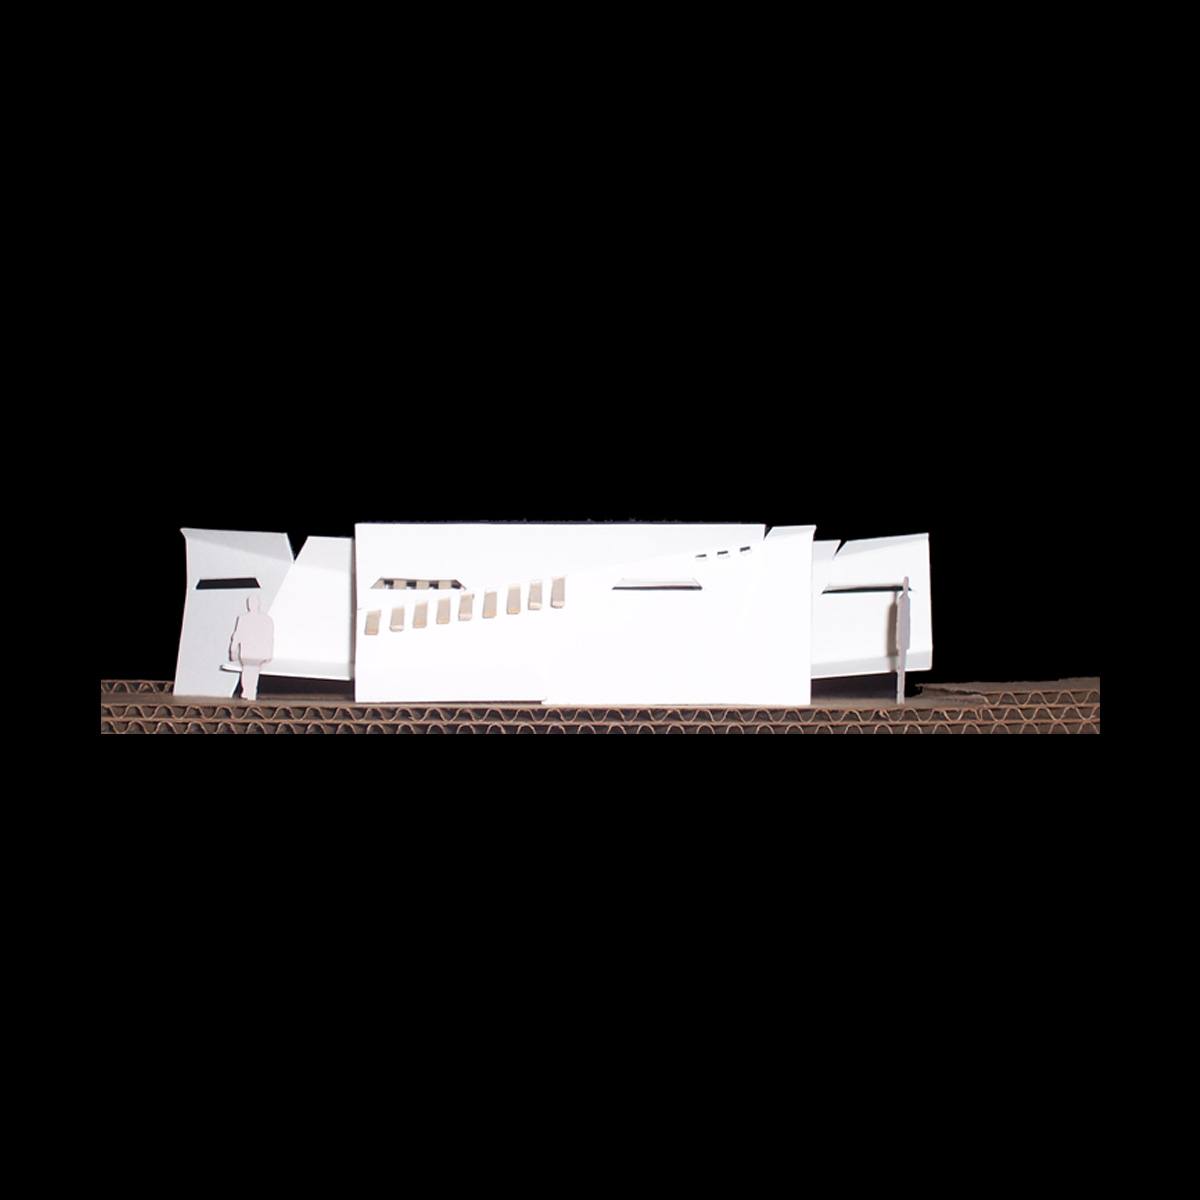 Section Of Model Design By Yana Anak Weekend Public Holiday Disneyland Shanghai  Tiket Good Principles Happen After Careful Investigation Site Space And The Surrounding Environment This Project Enables A Designer To Rethink